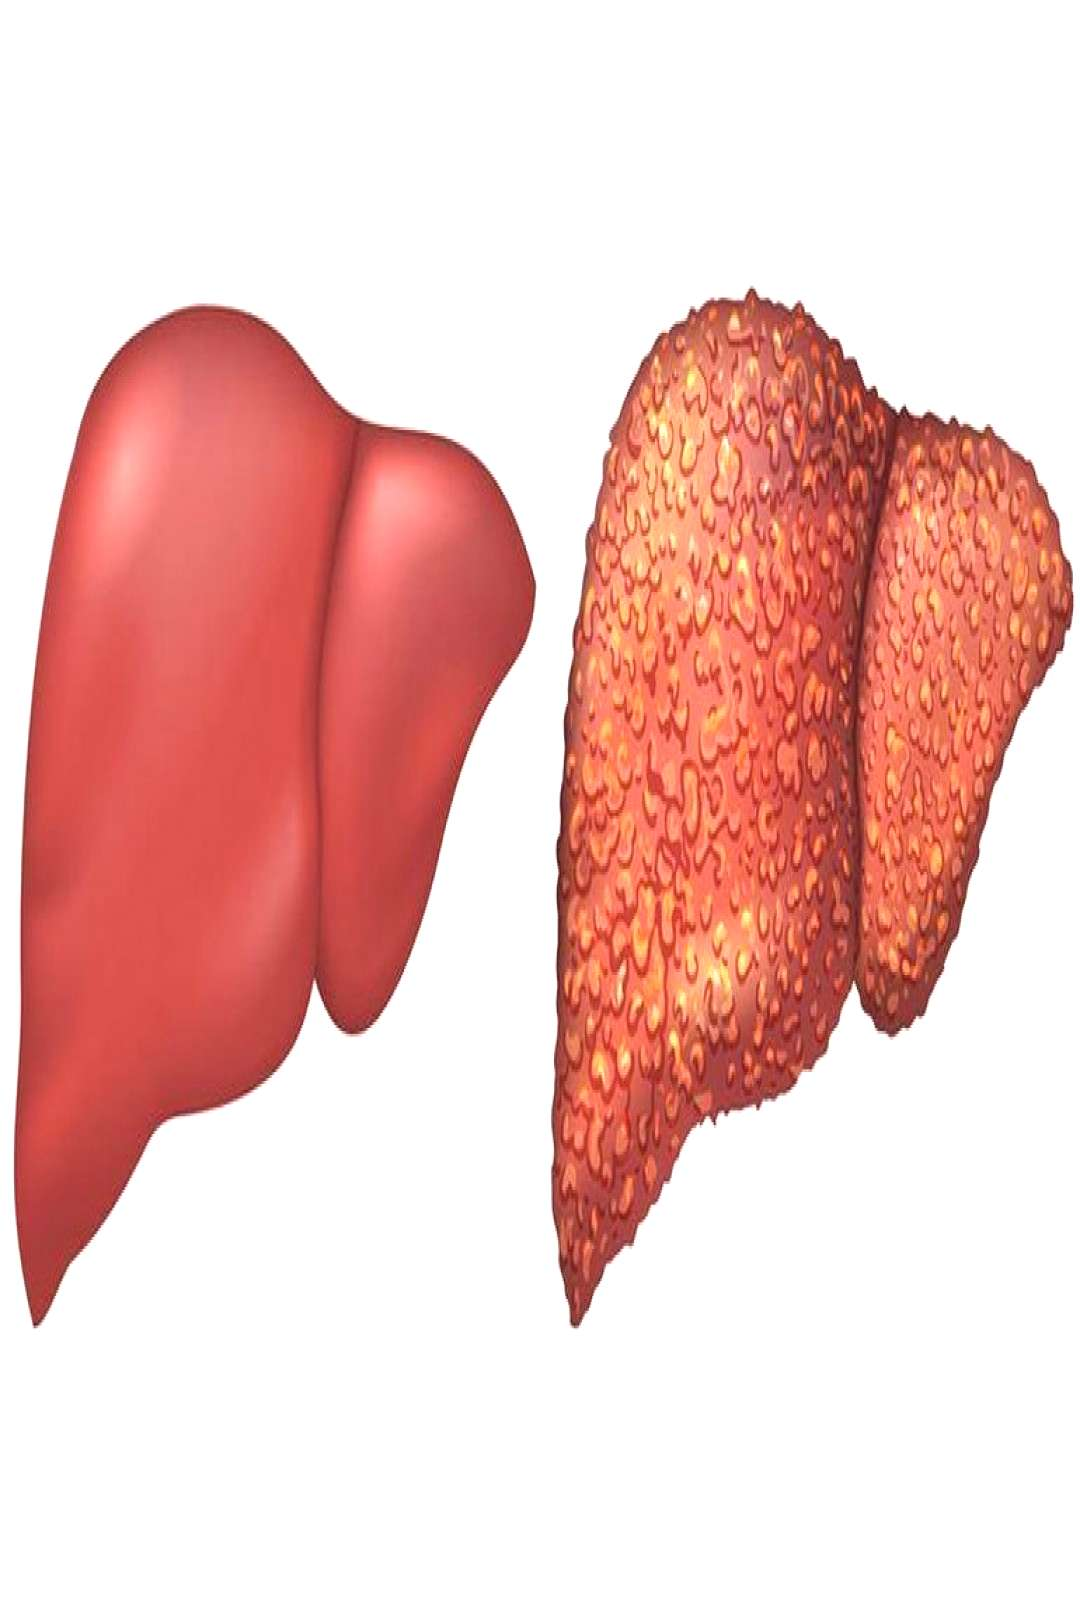 Differentiating Acute and Chronic Liver Diseases  Course Curriculum CME on Differentiating Acute an